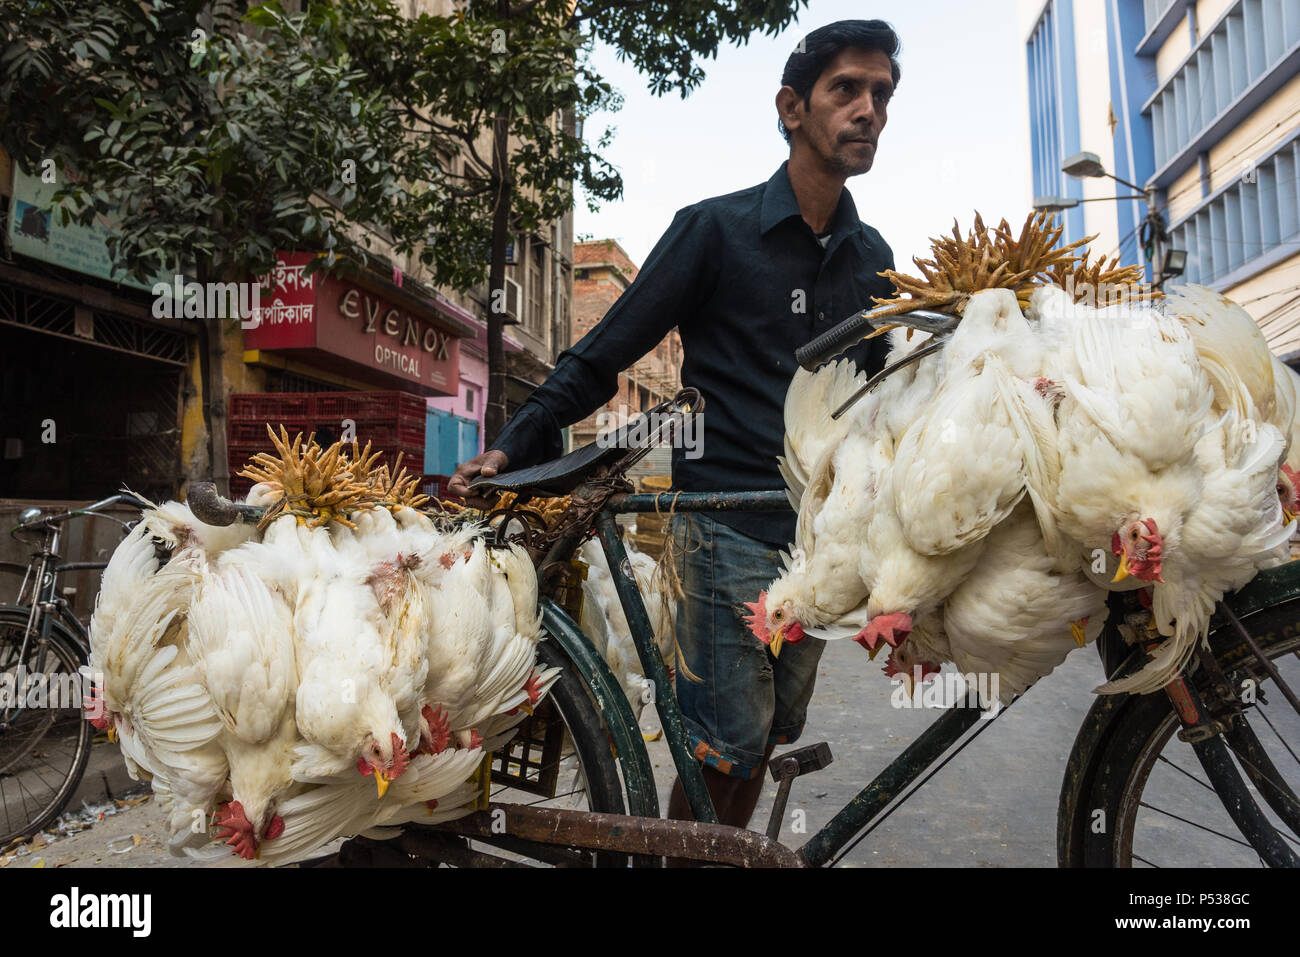 A man hauls off a recently purchased batch of chickens on his bicyclei Kolkata, India. - Stock Image